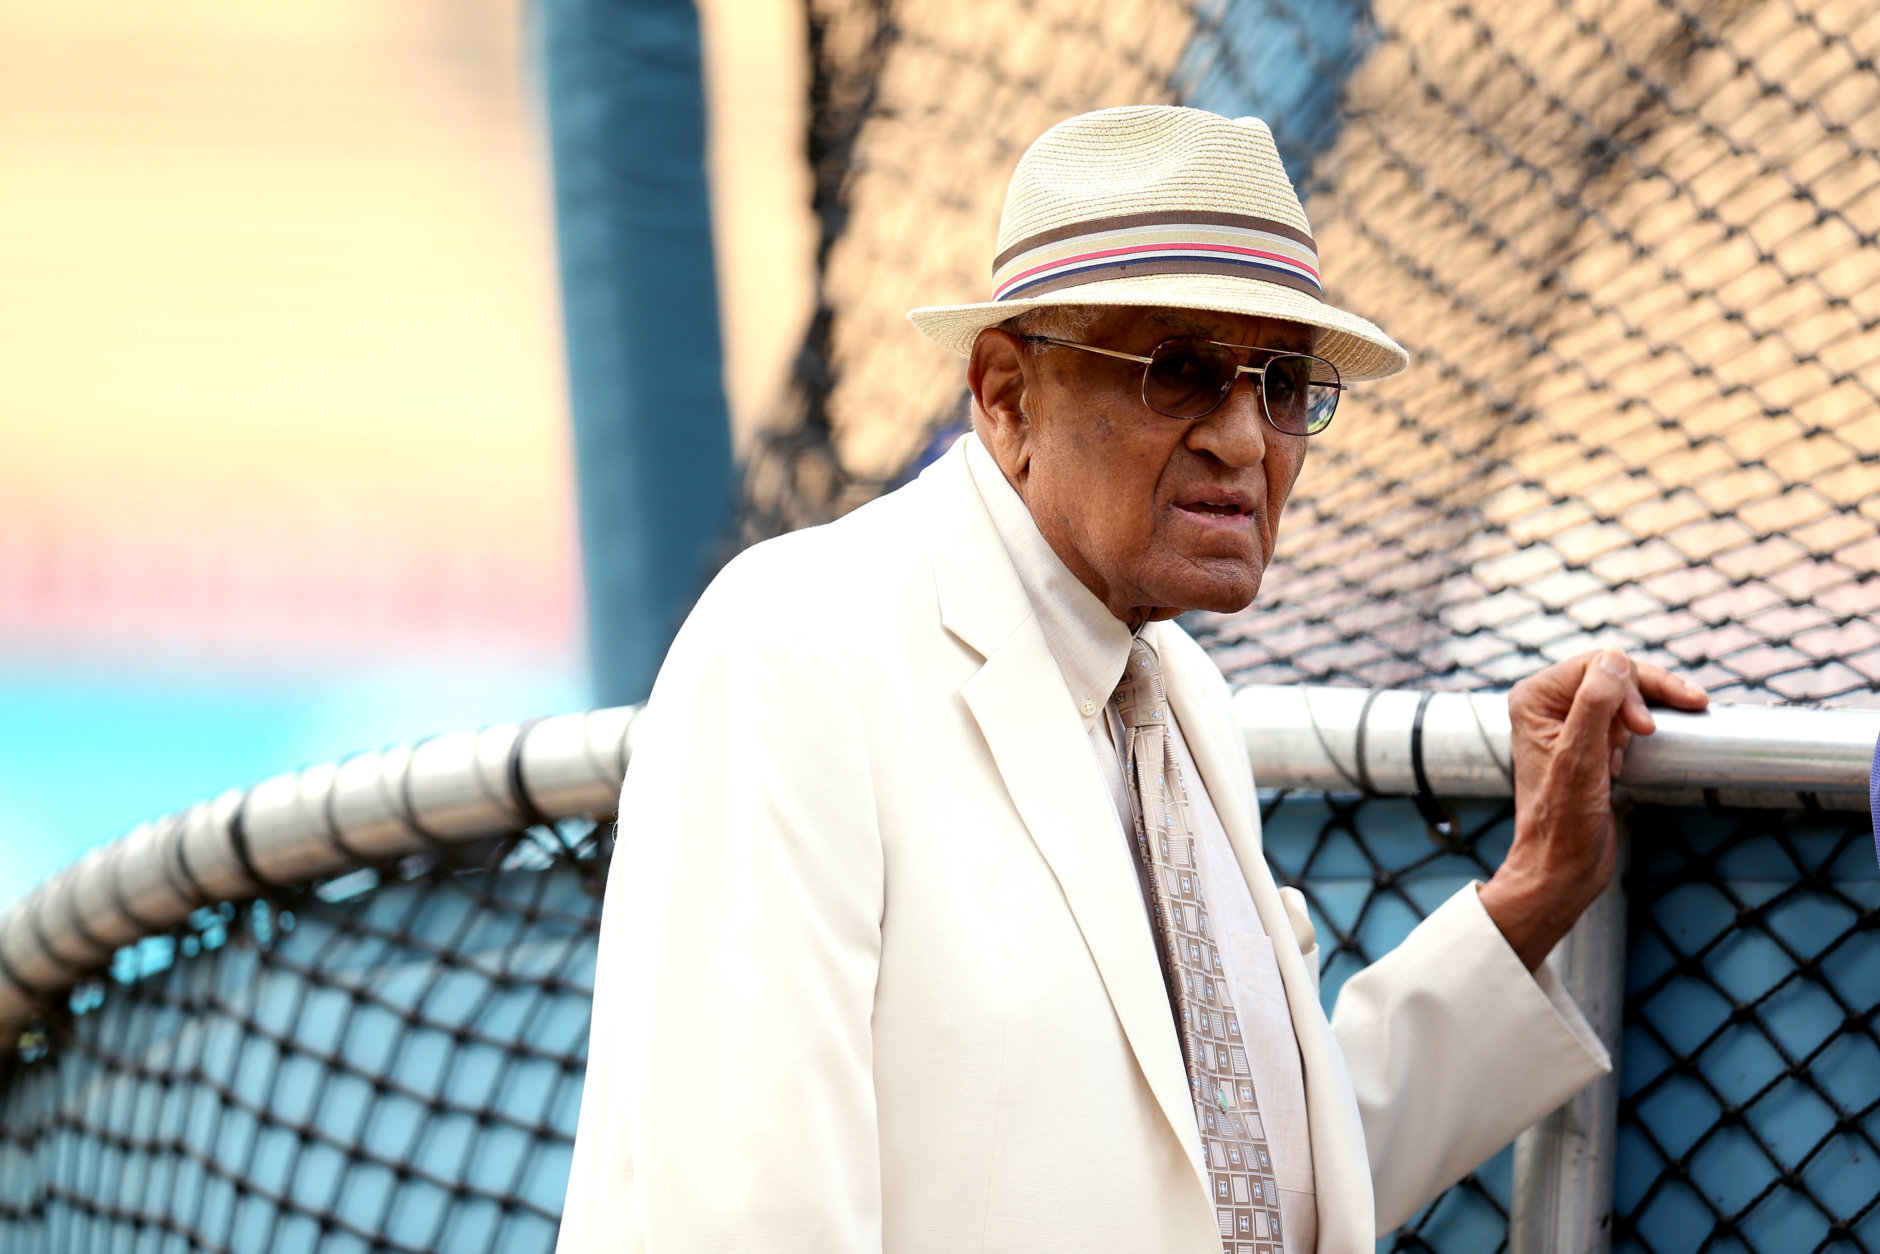 LOS ANGELES, CA - AUGUST 30:  Dodgers Hall of Fame pitcher Don Newcombe watches batting practrice before the game between the Los Angeles Dodgers and the Arizona Diamondbacks on August 30, 2012 at Dodger Stadium in Los Angeles, California.  (Photo by Stephen Dunn/Getty Images)